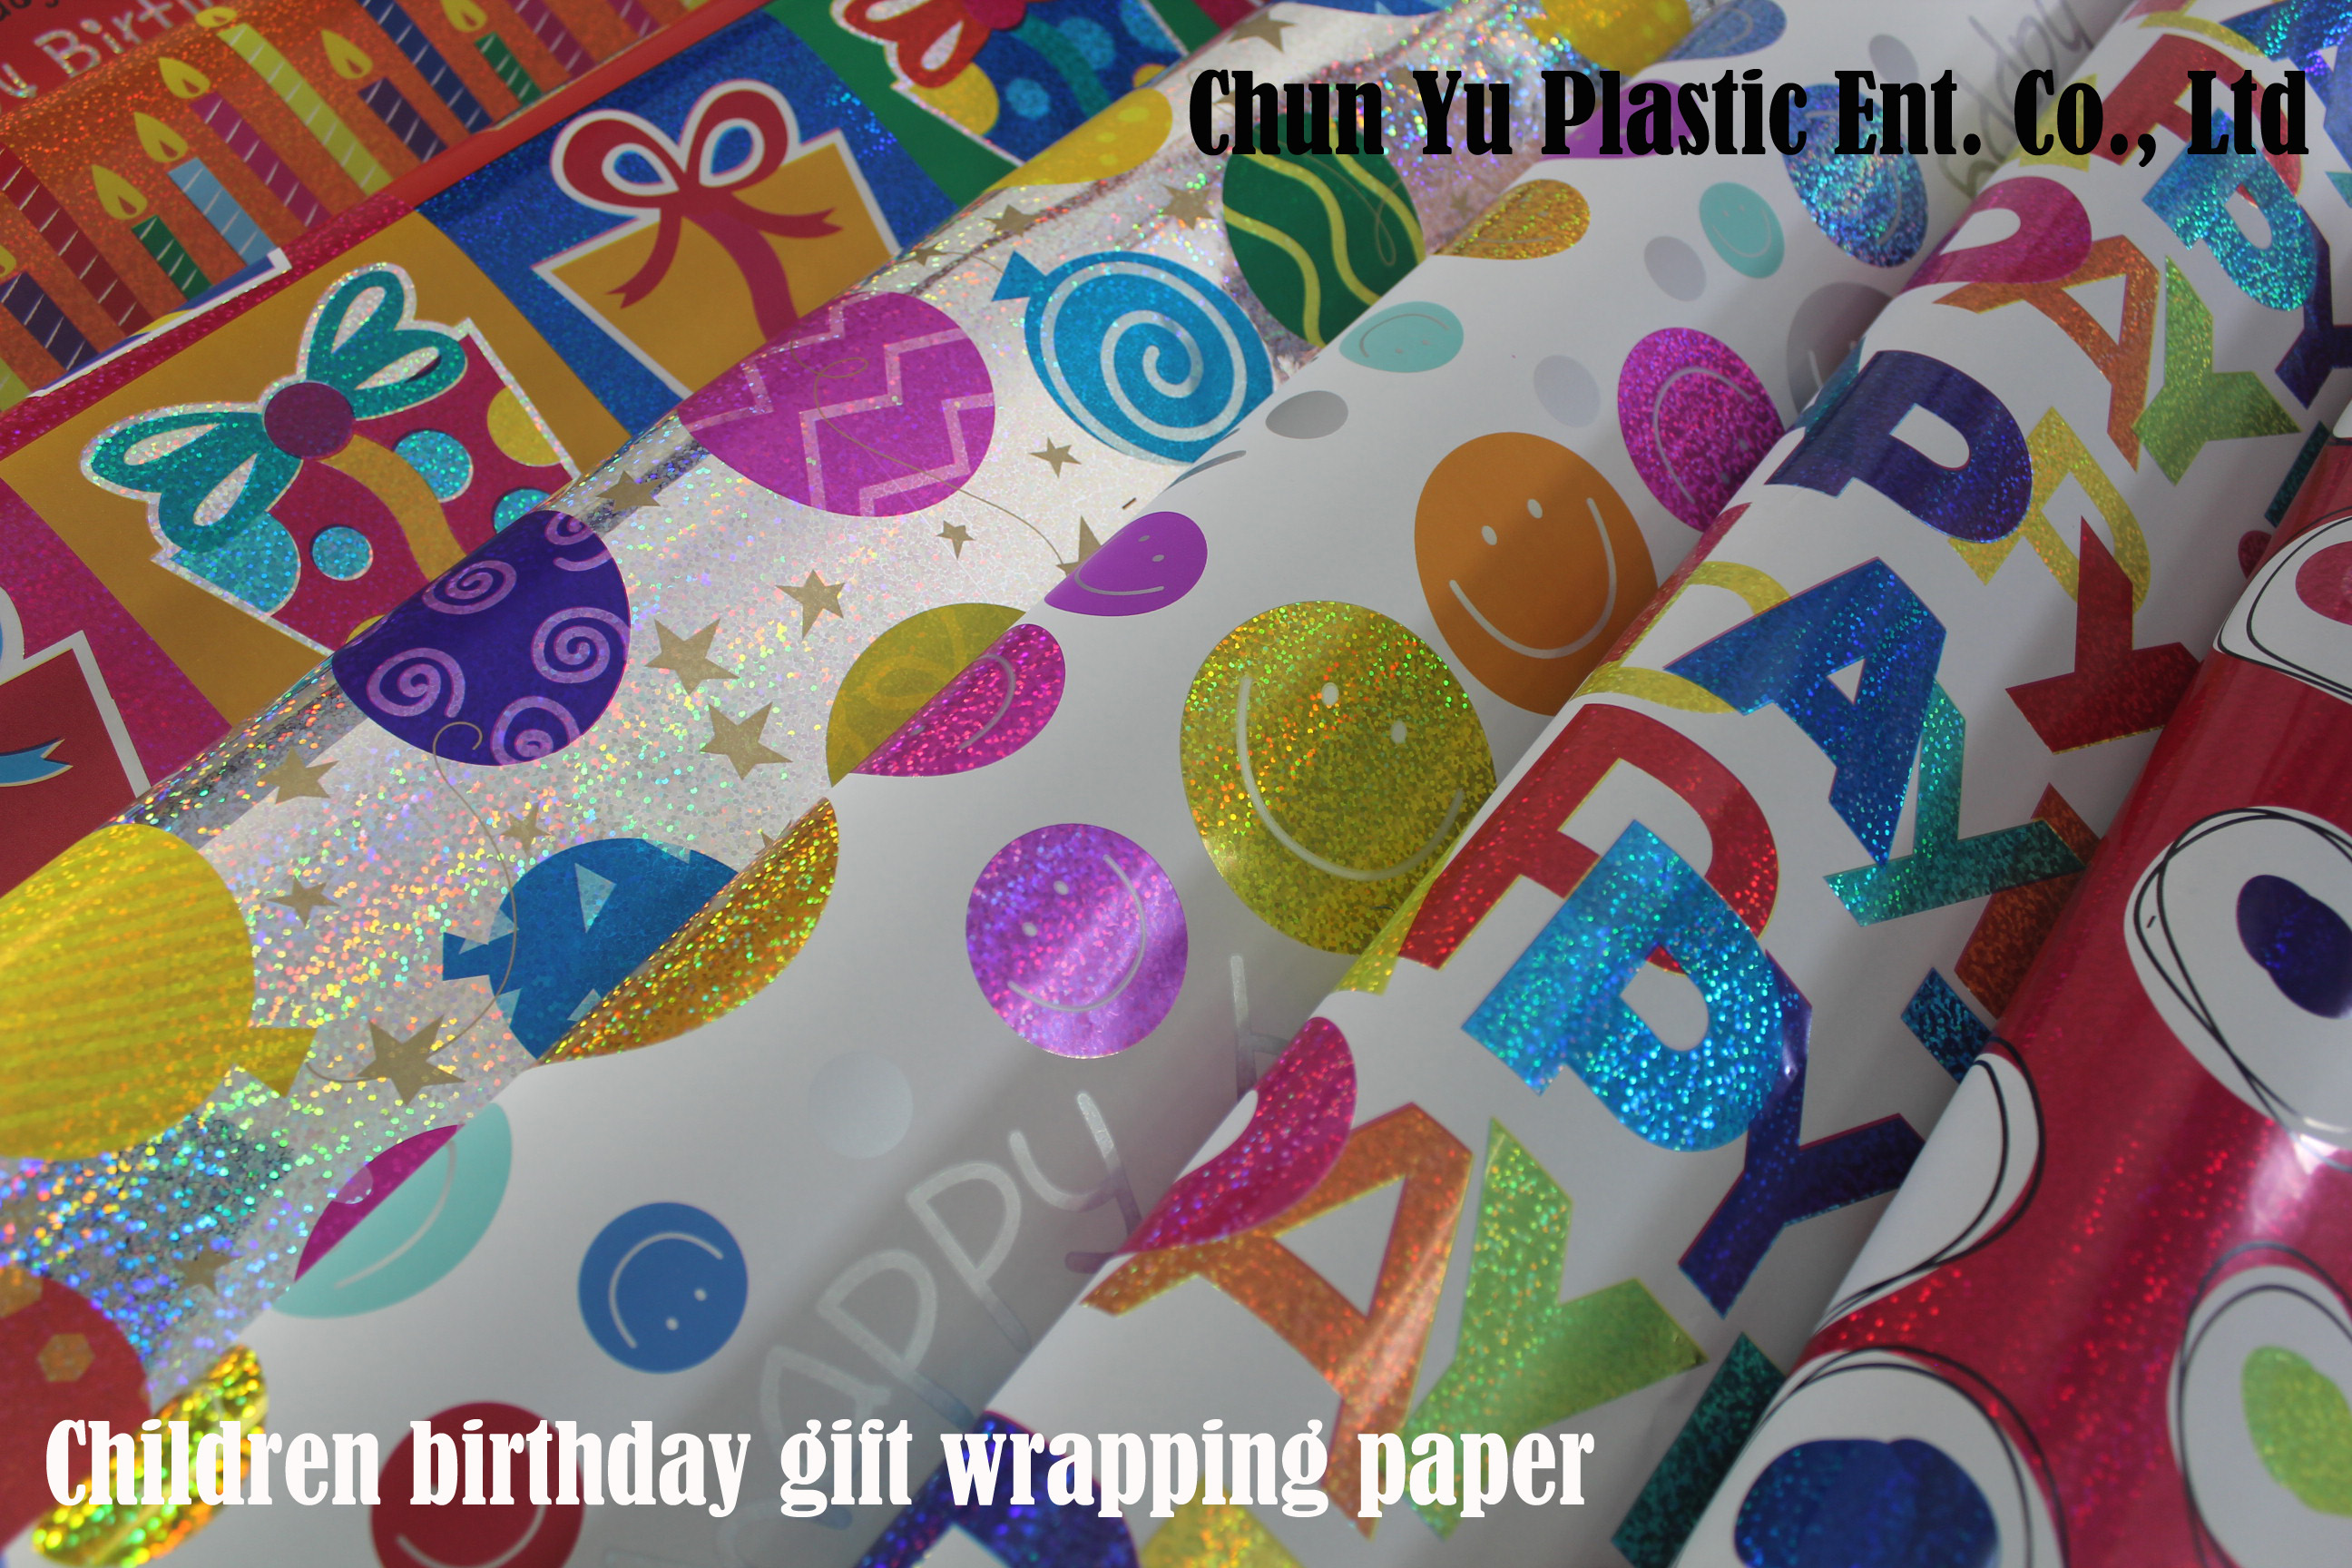 Chun Yu Plastic produces gift wrapping paper for children presents and birthday parties for girls and boys